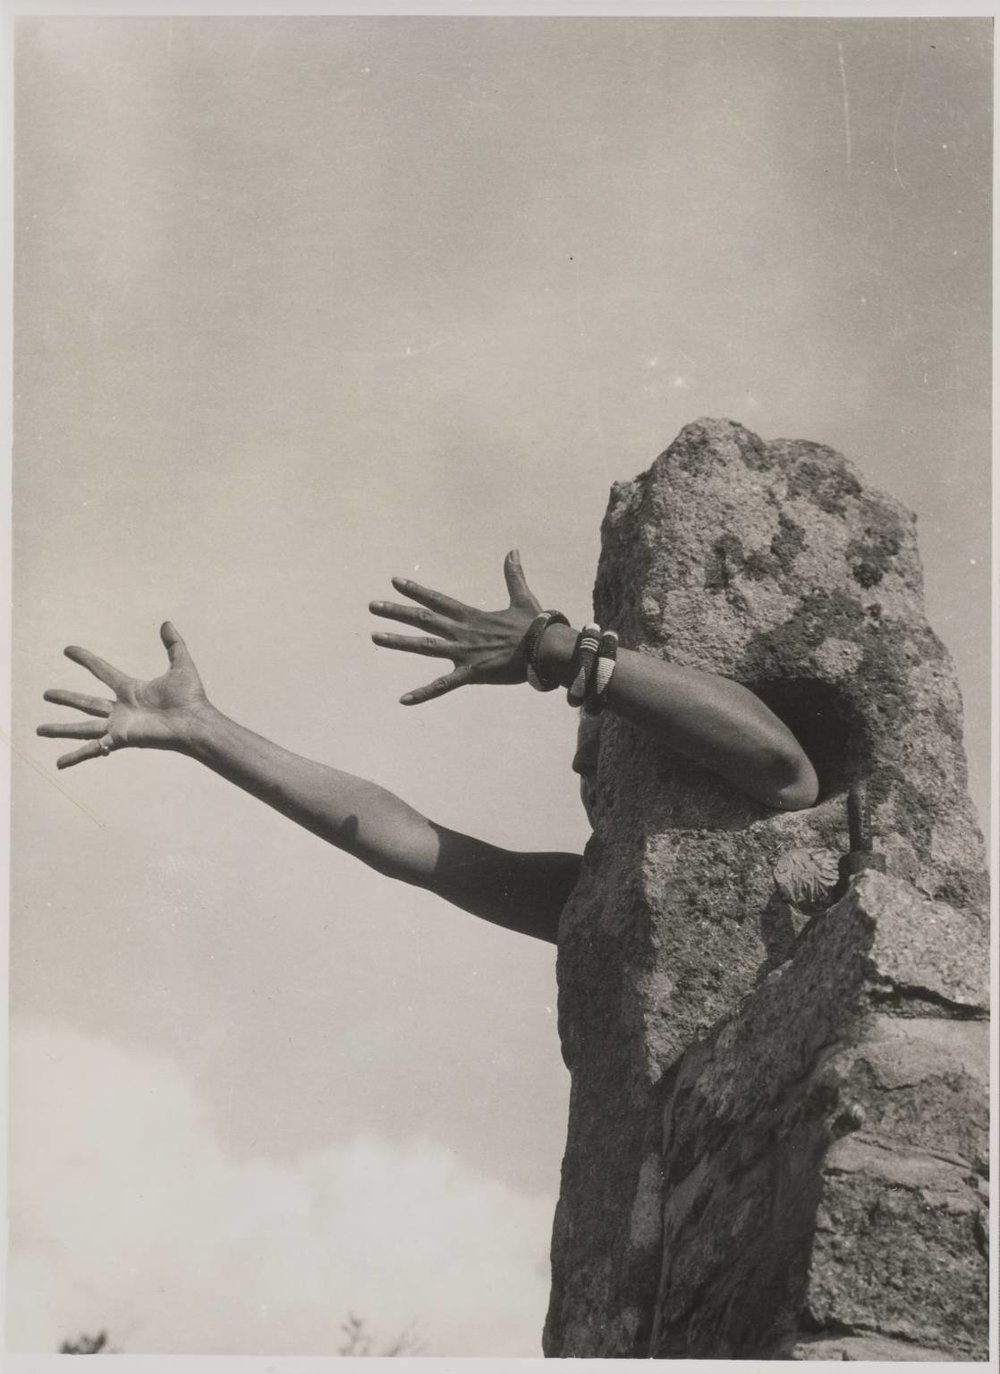 Je tends les bras , Claude Cahun, 1931